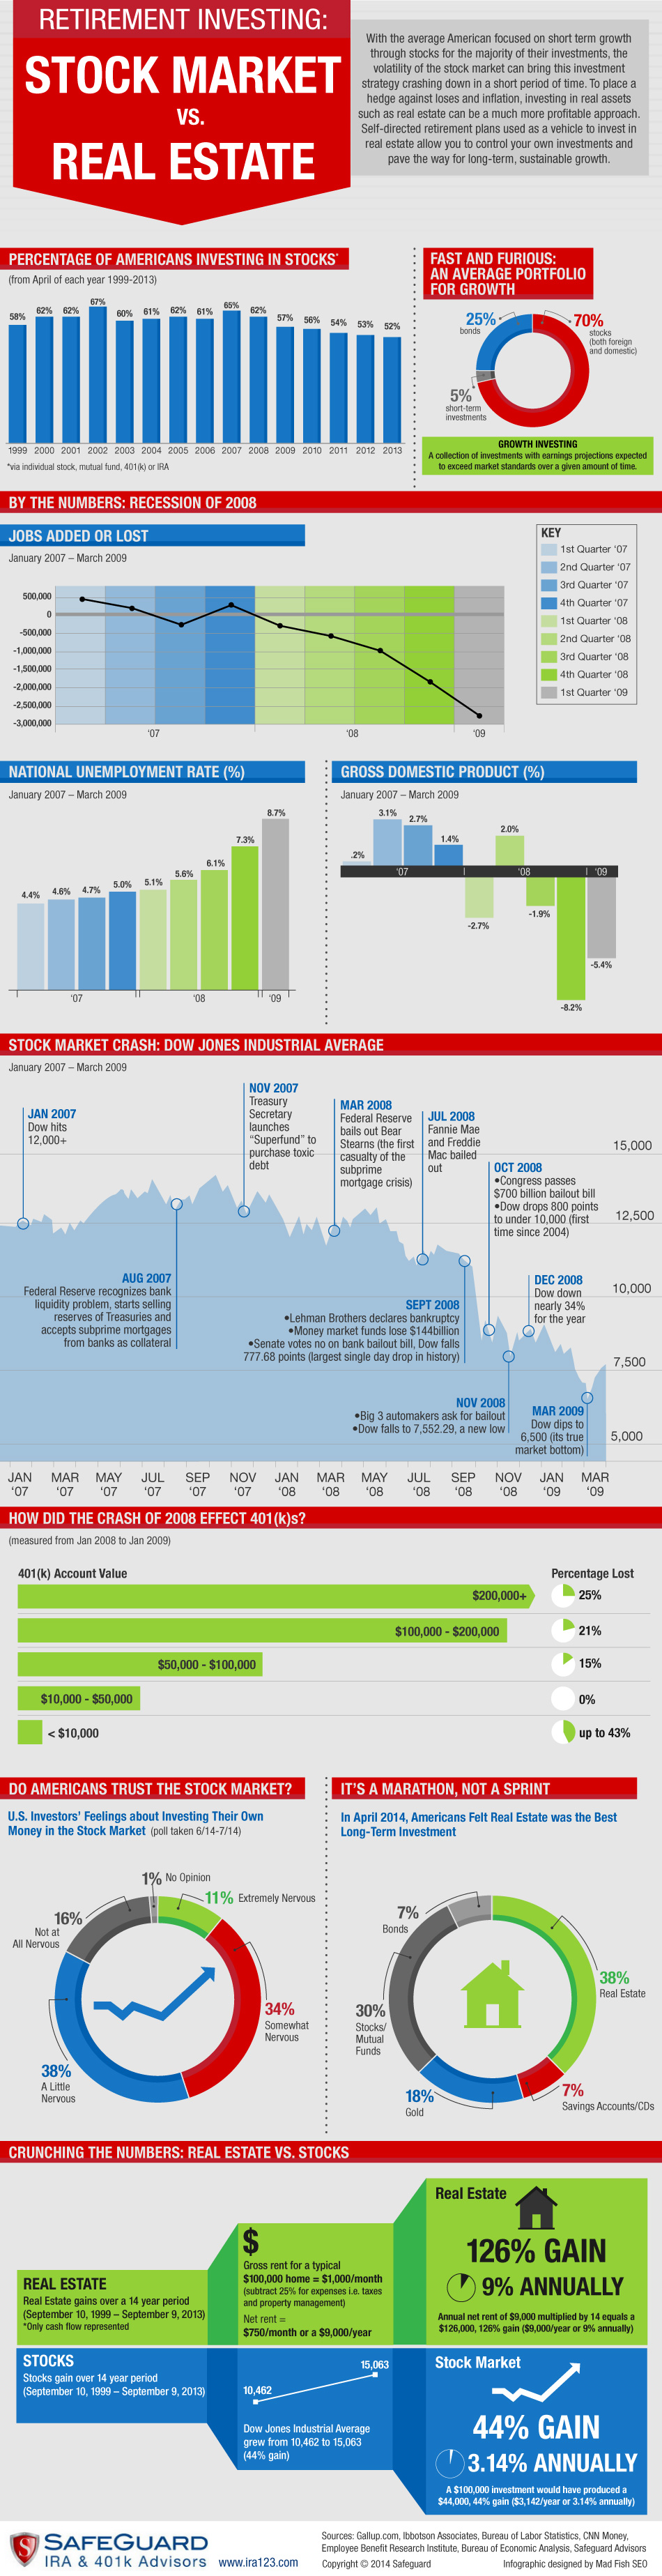 Safeguard-Infographic_Real-Estate-vs-Stocks_Sep-2014